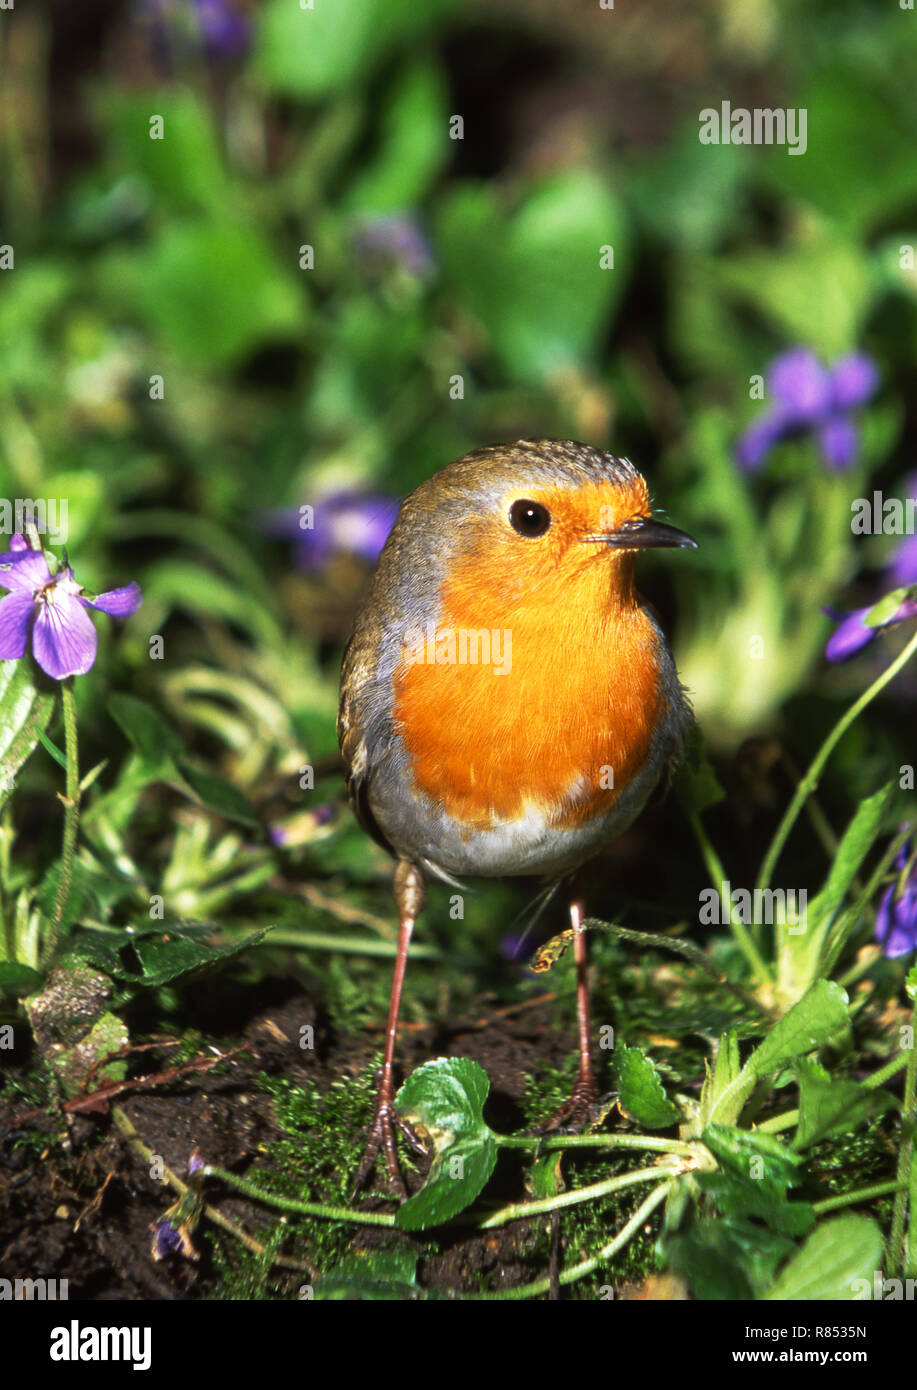 Robin (Erithacus rubecula) brought into camera range with food. - Stock Image